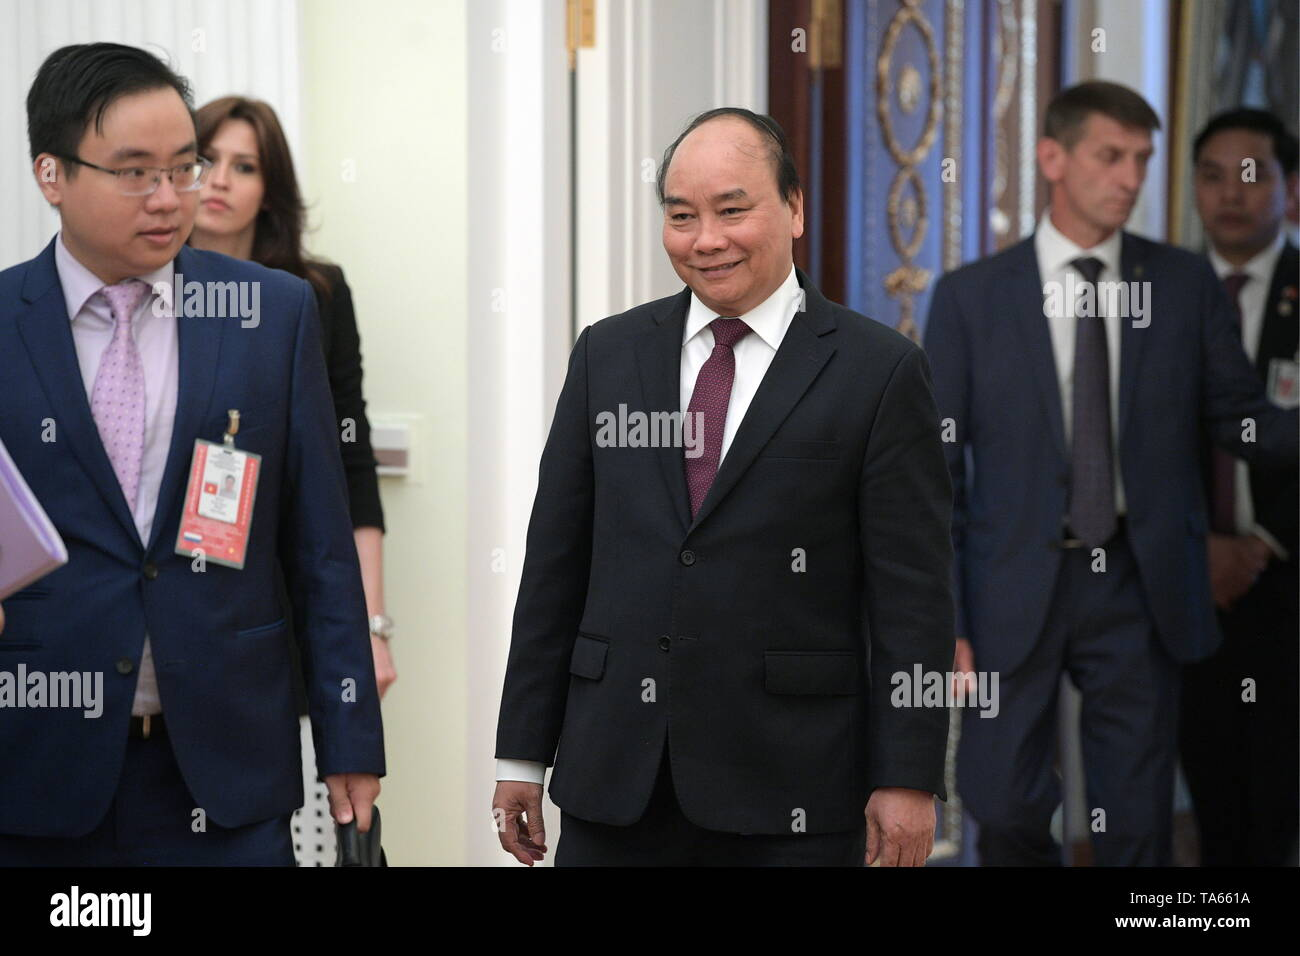 Moscow, Russia. 22nd May, 2019. MOSCOW, RUSSIA - MAY 22, 2019: Vietnam's Prime Minister Nguyen Xuan Phuc ahead of a meeting with Russia's President Vladimir Putin at the Moscow Kremlin. Alexei Druzhinin/Russian Presidential Press and Information Office/TASS Credit: ITAR-TASS News Agency/Alamy Live News - Stock Image